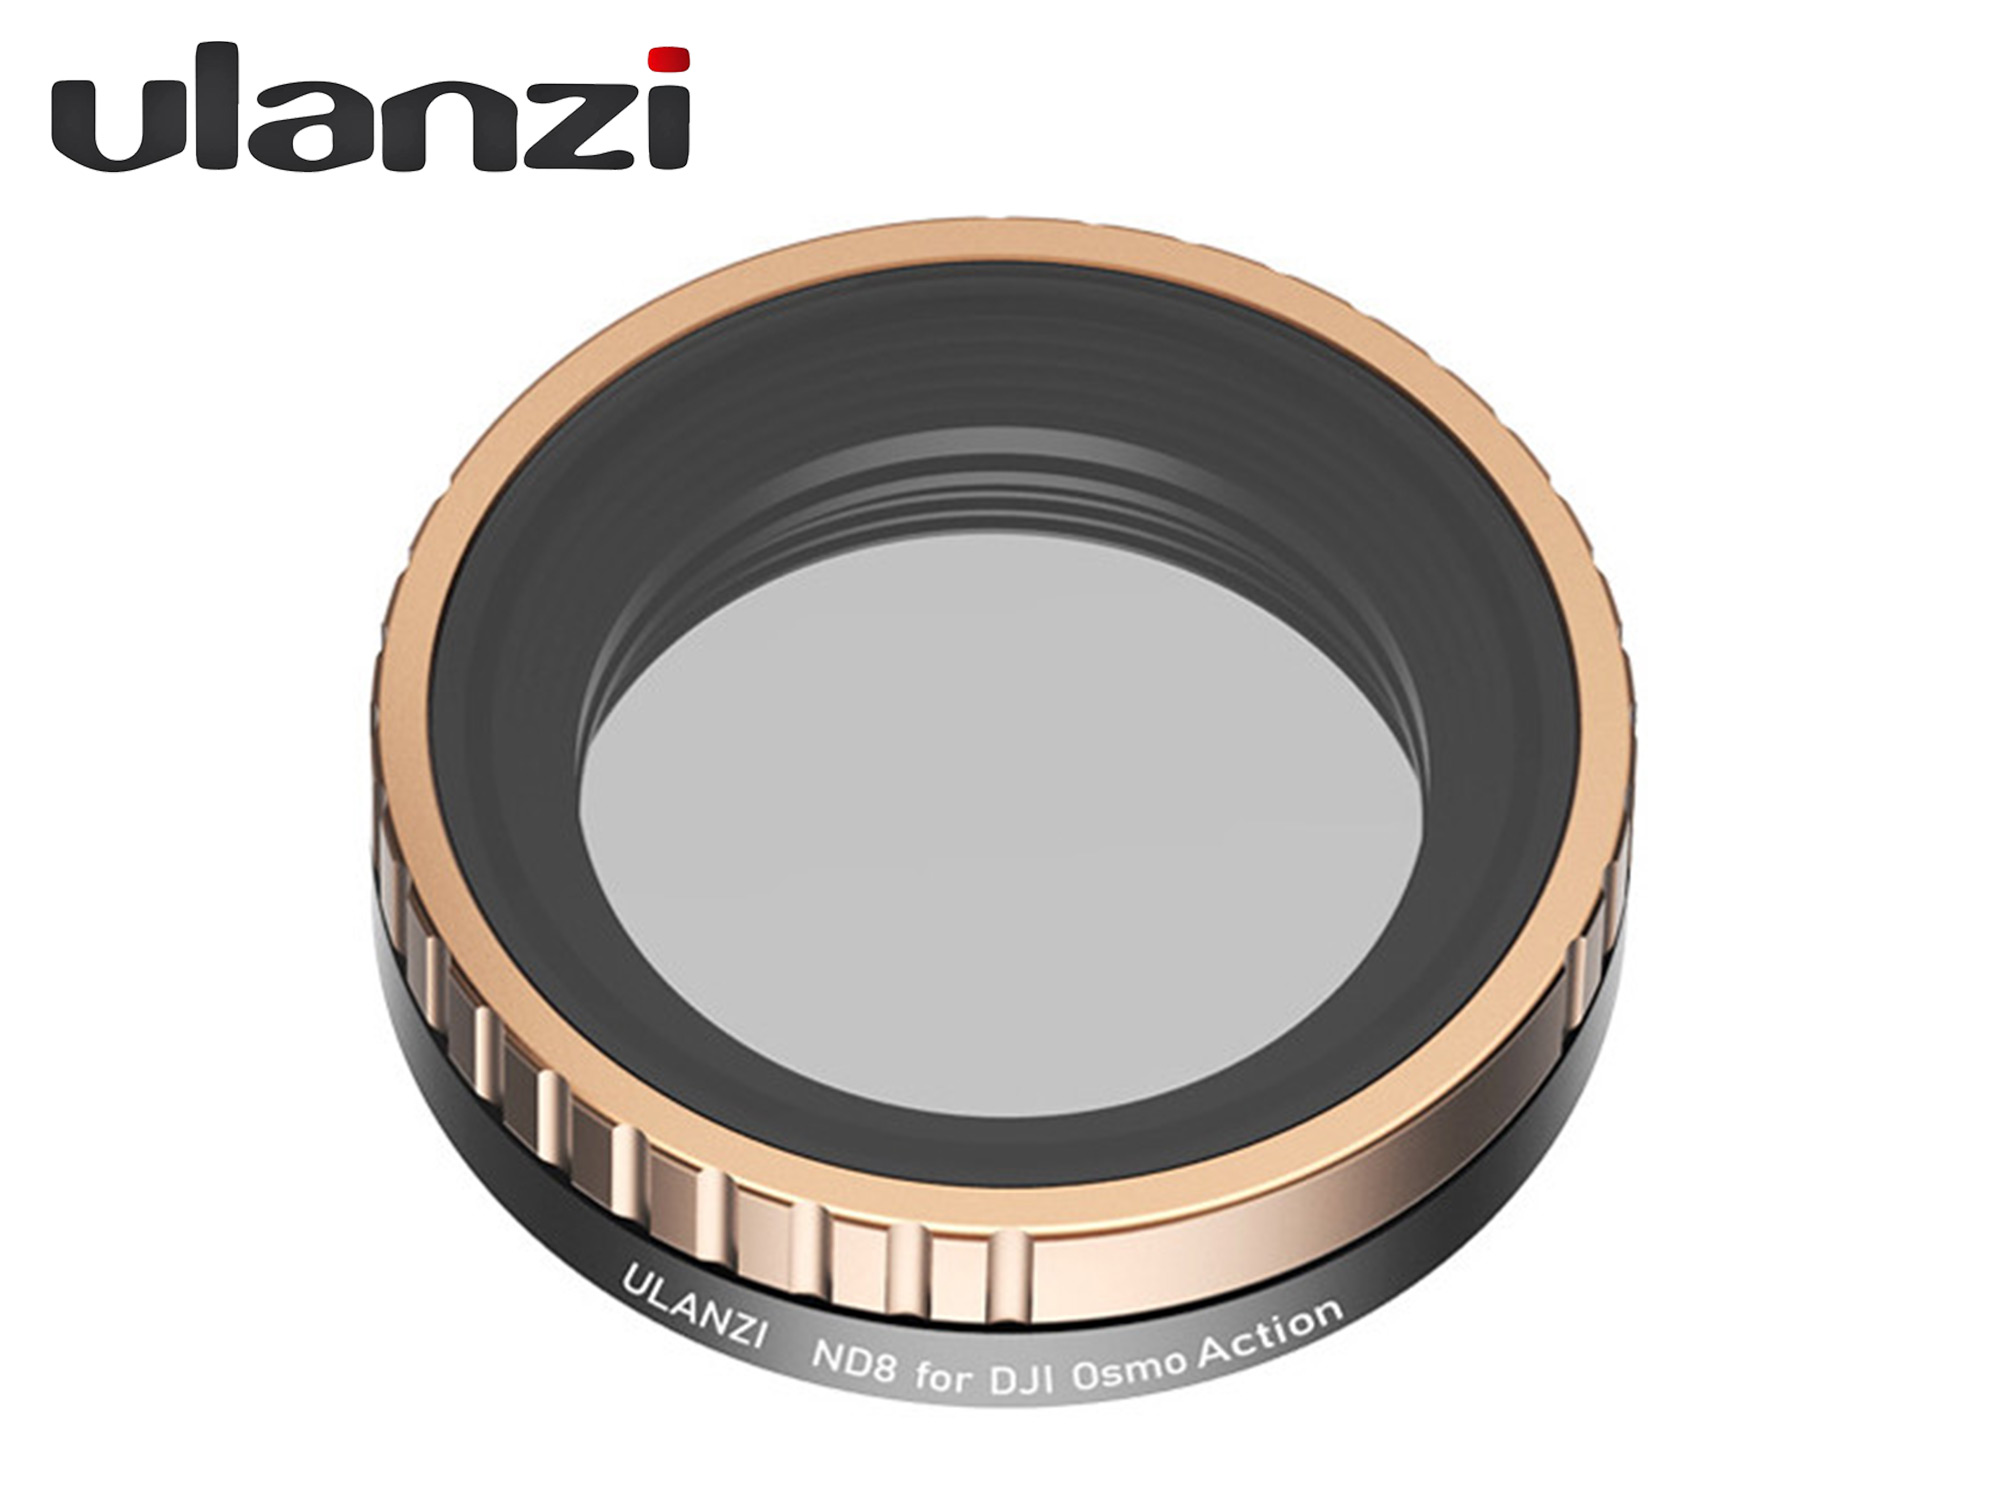 Ulanzi ND Filter for Osmo Action - ND8